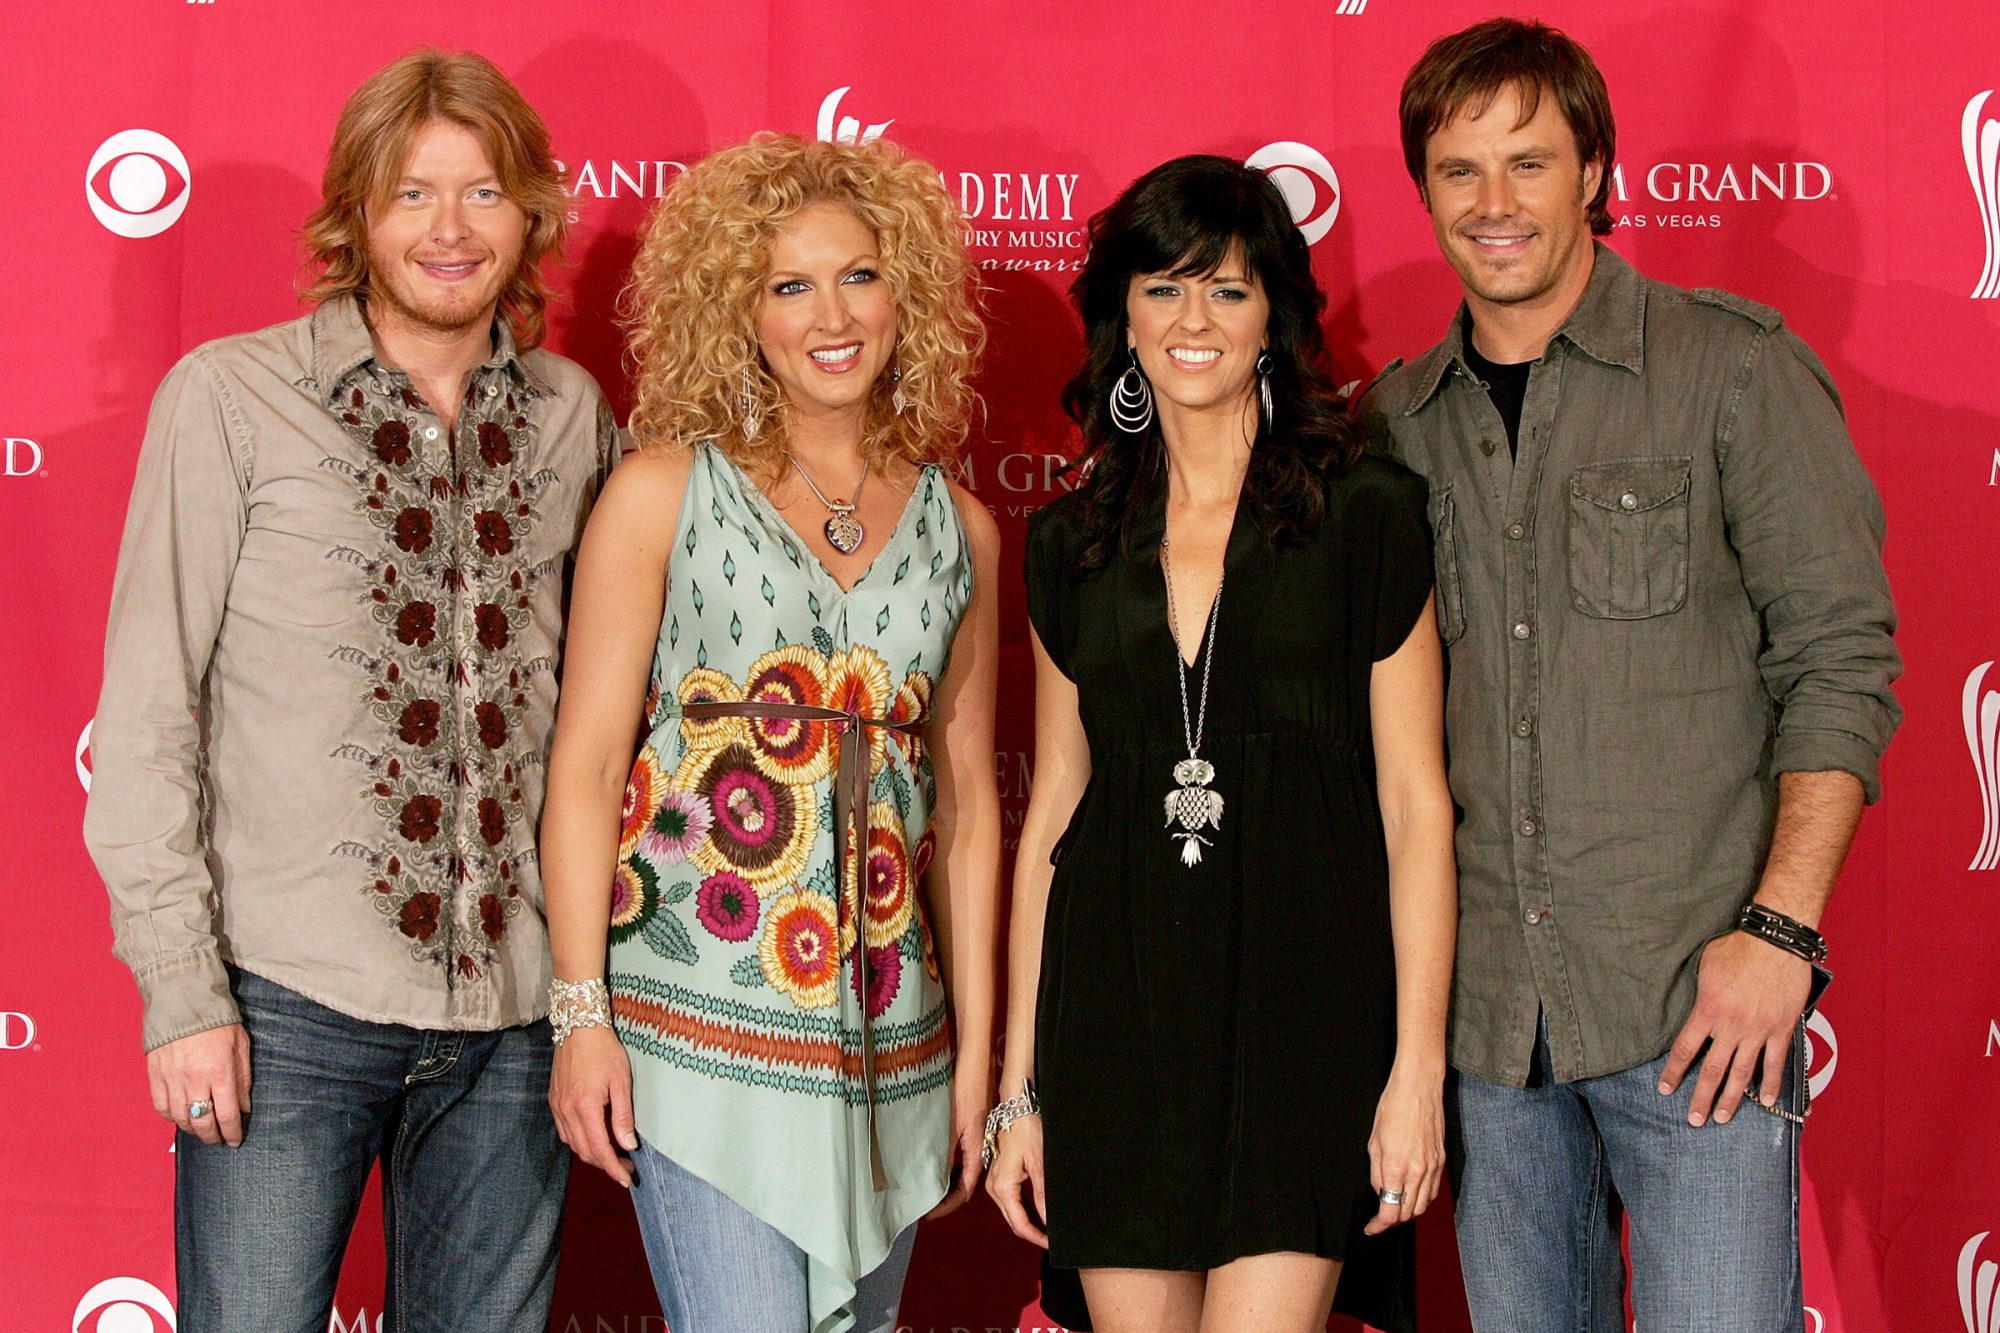 Phillip Sweet, Kimberly Roads, Karen Fairchild and Jimi Westbrook of the group Little Big Town Academy of Country Music Awards